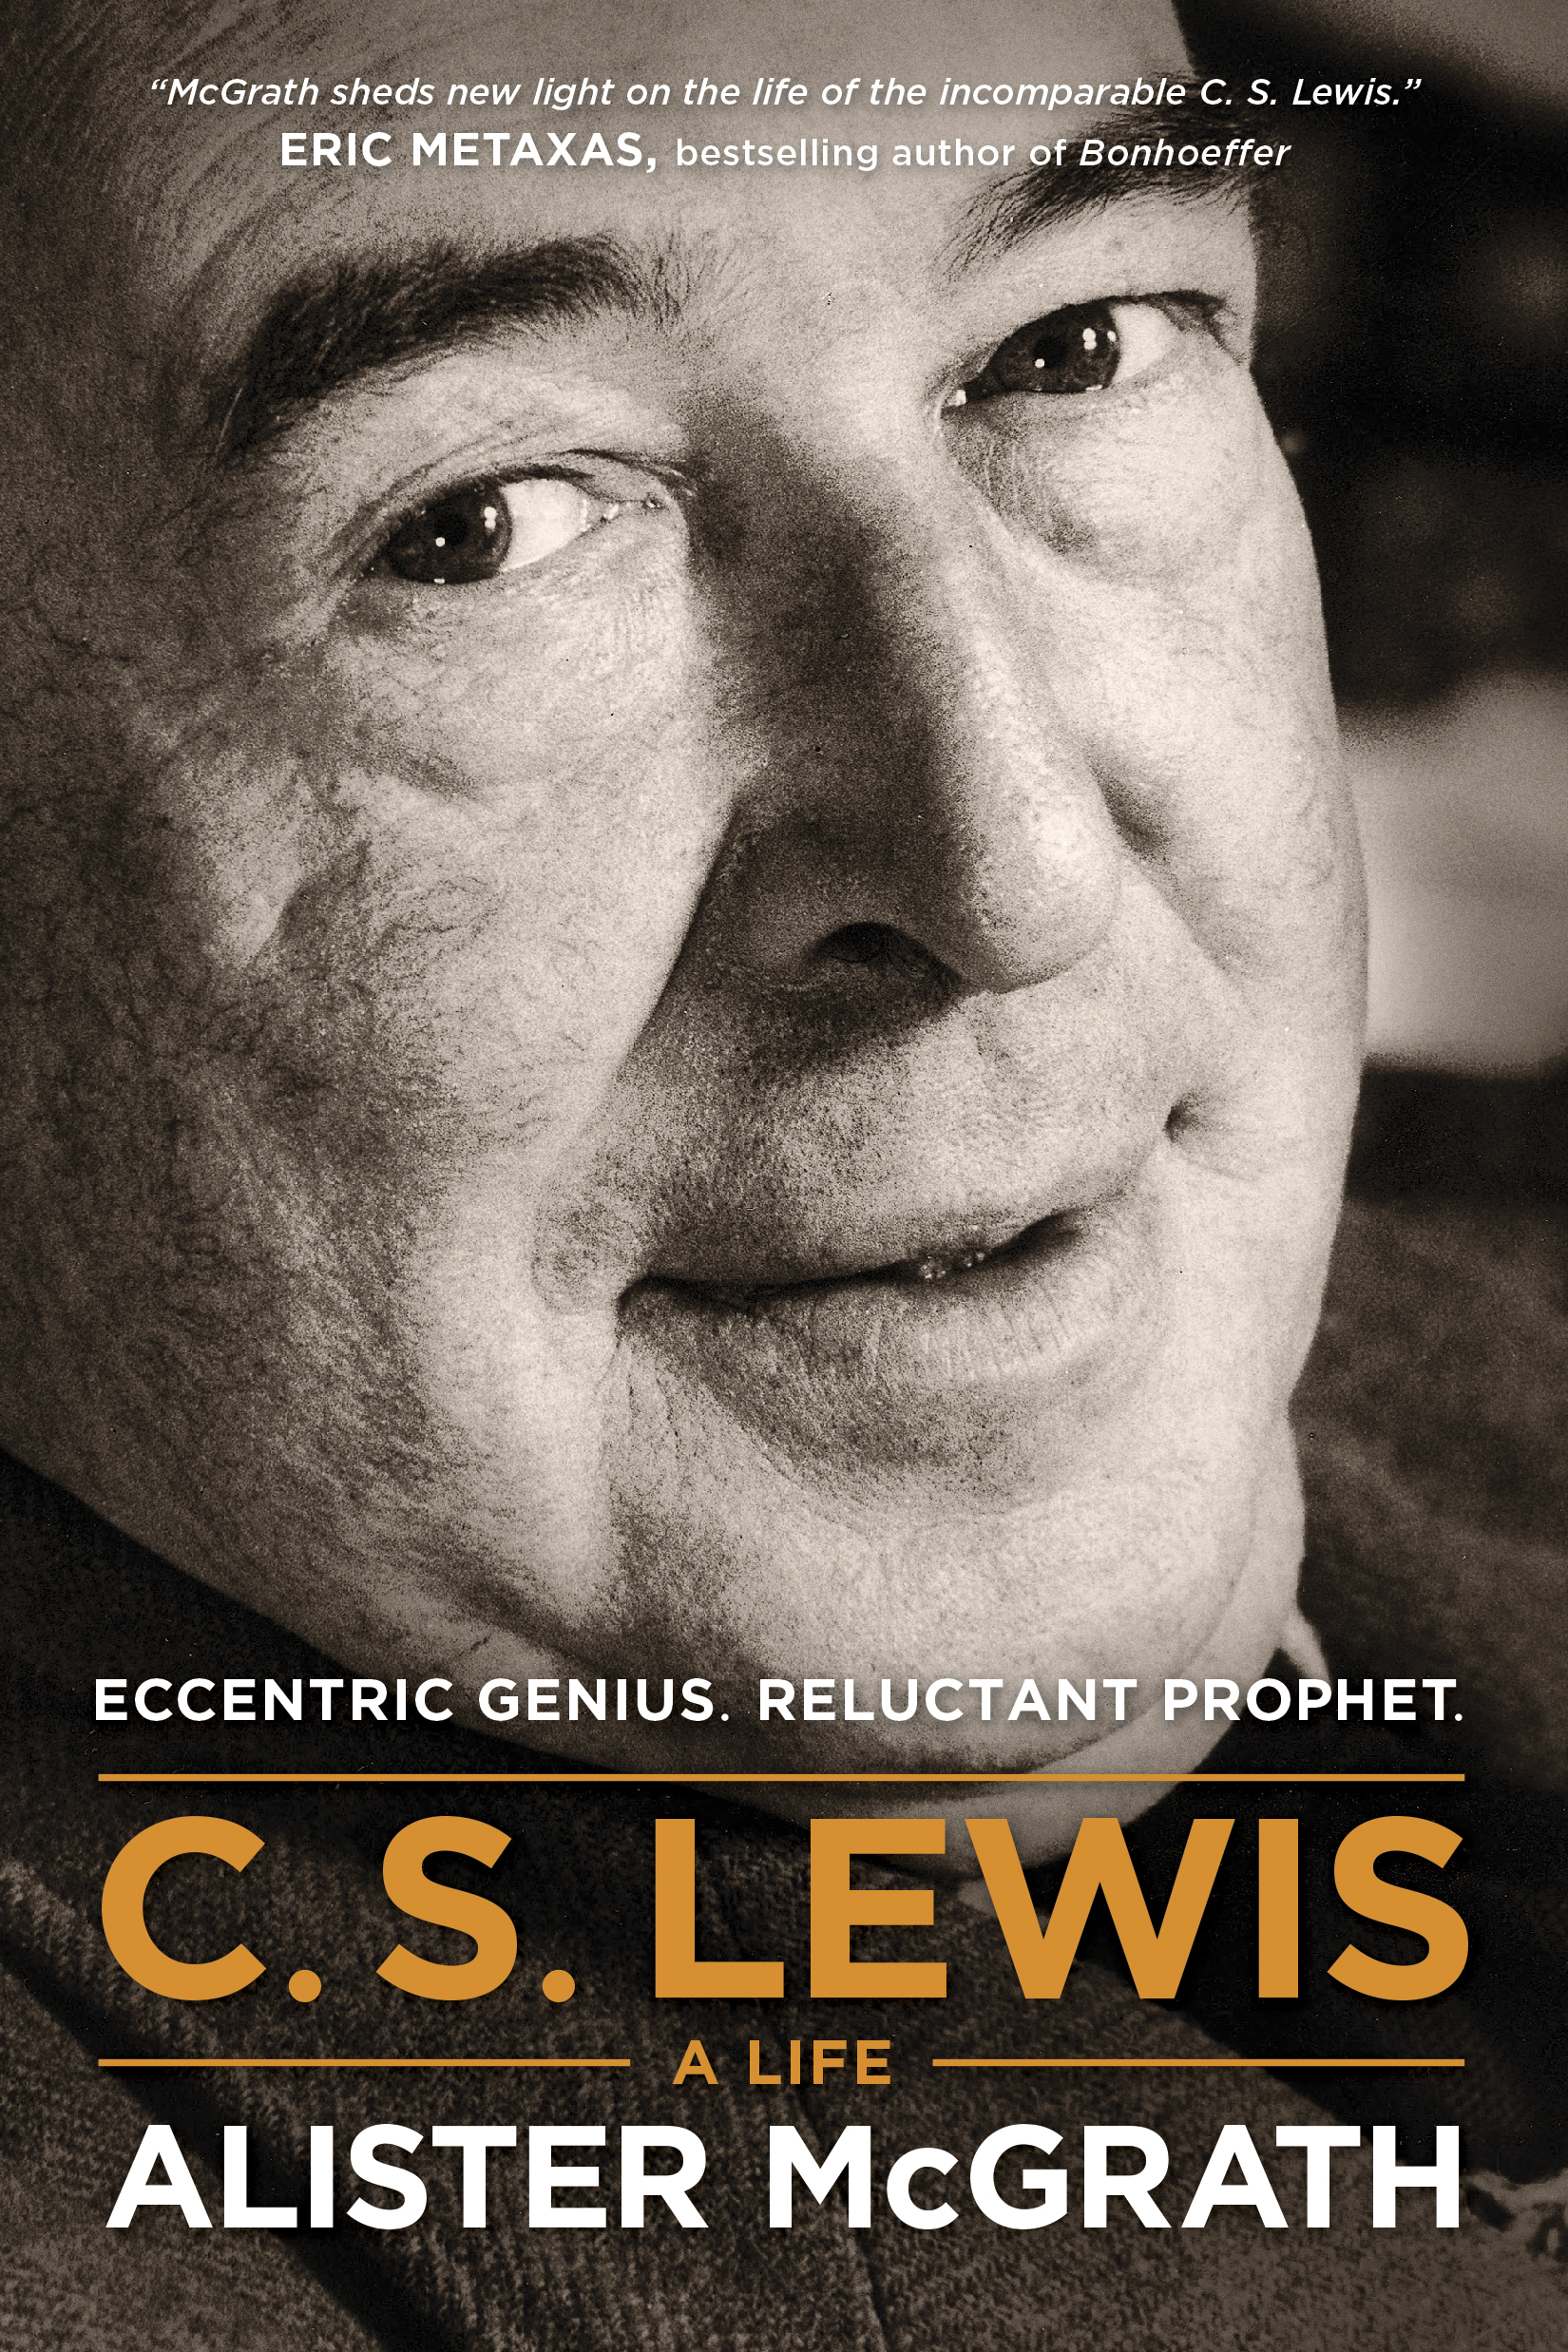 C. S. Lewis -- A Life